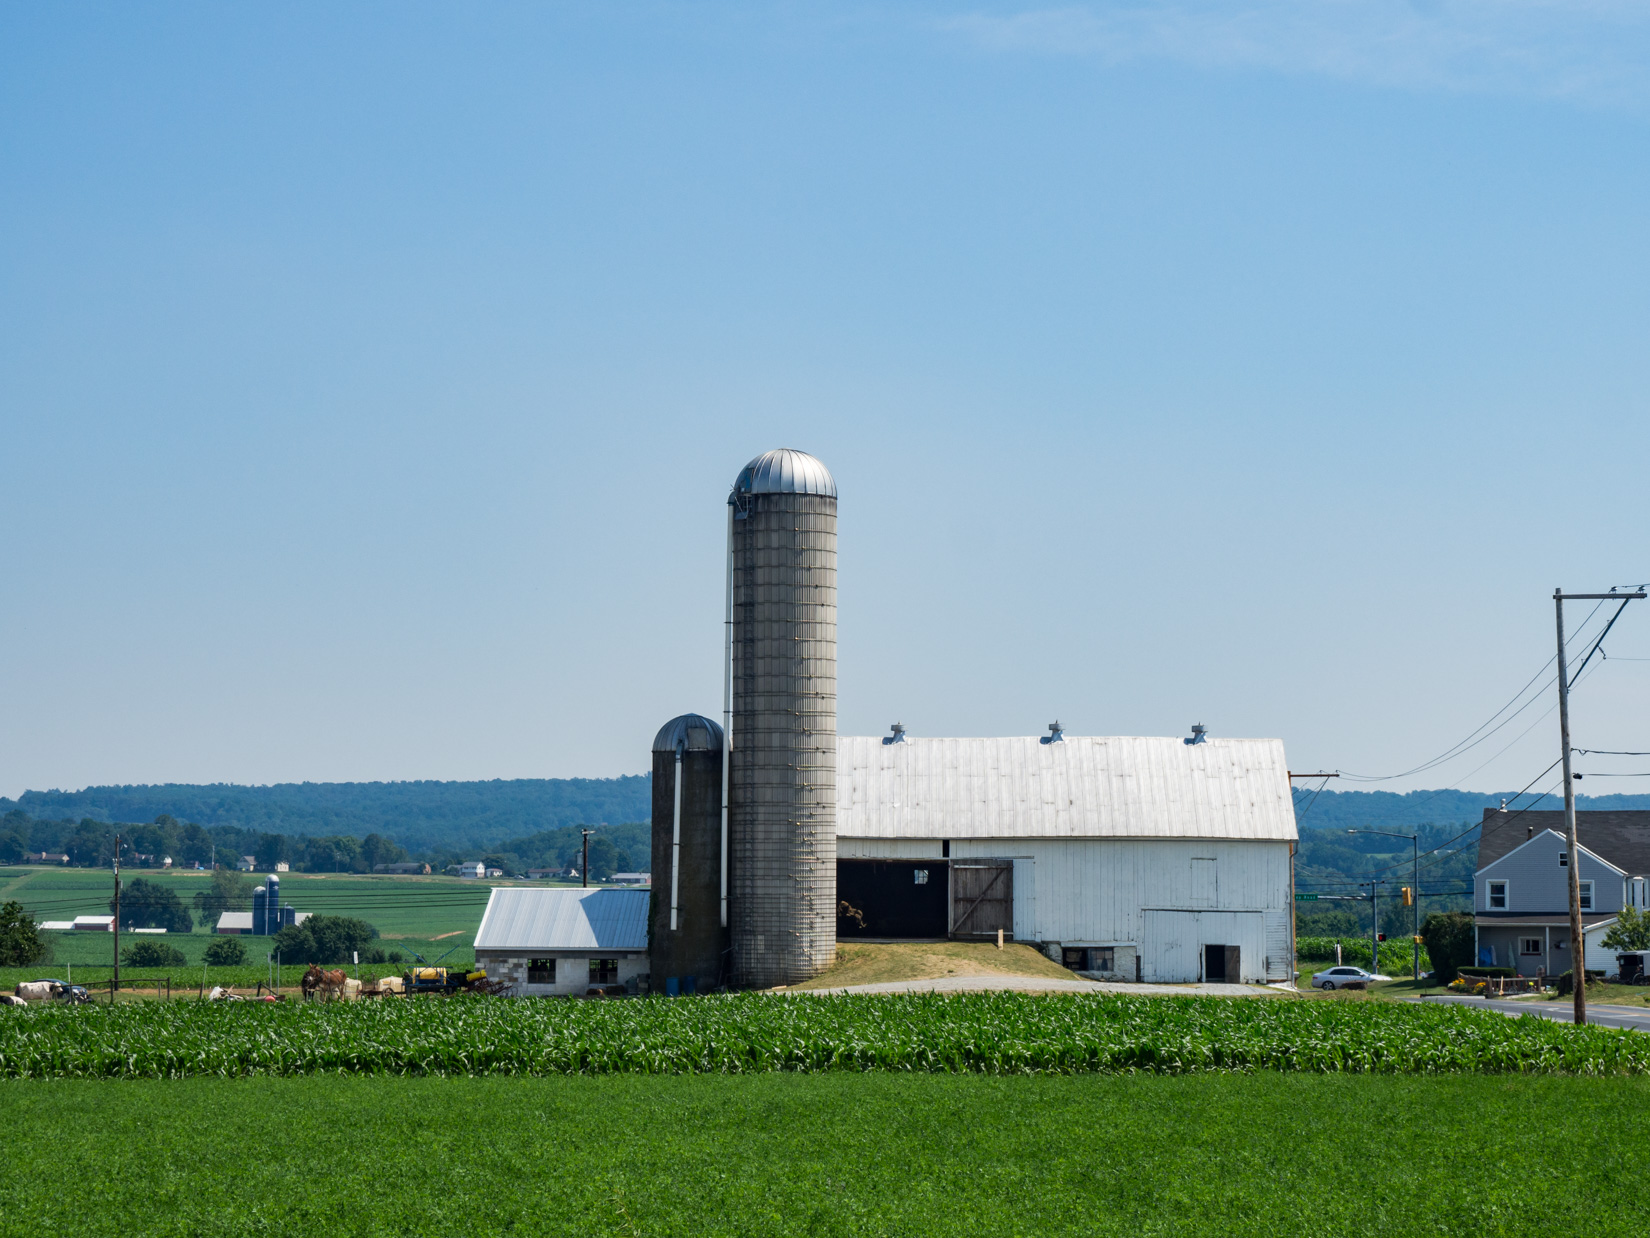 Farms with Barns and Silos